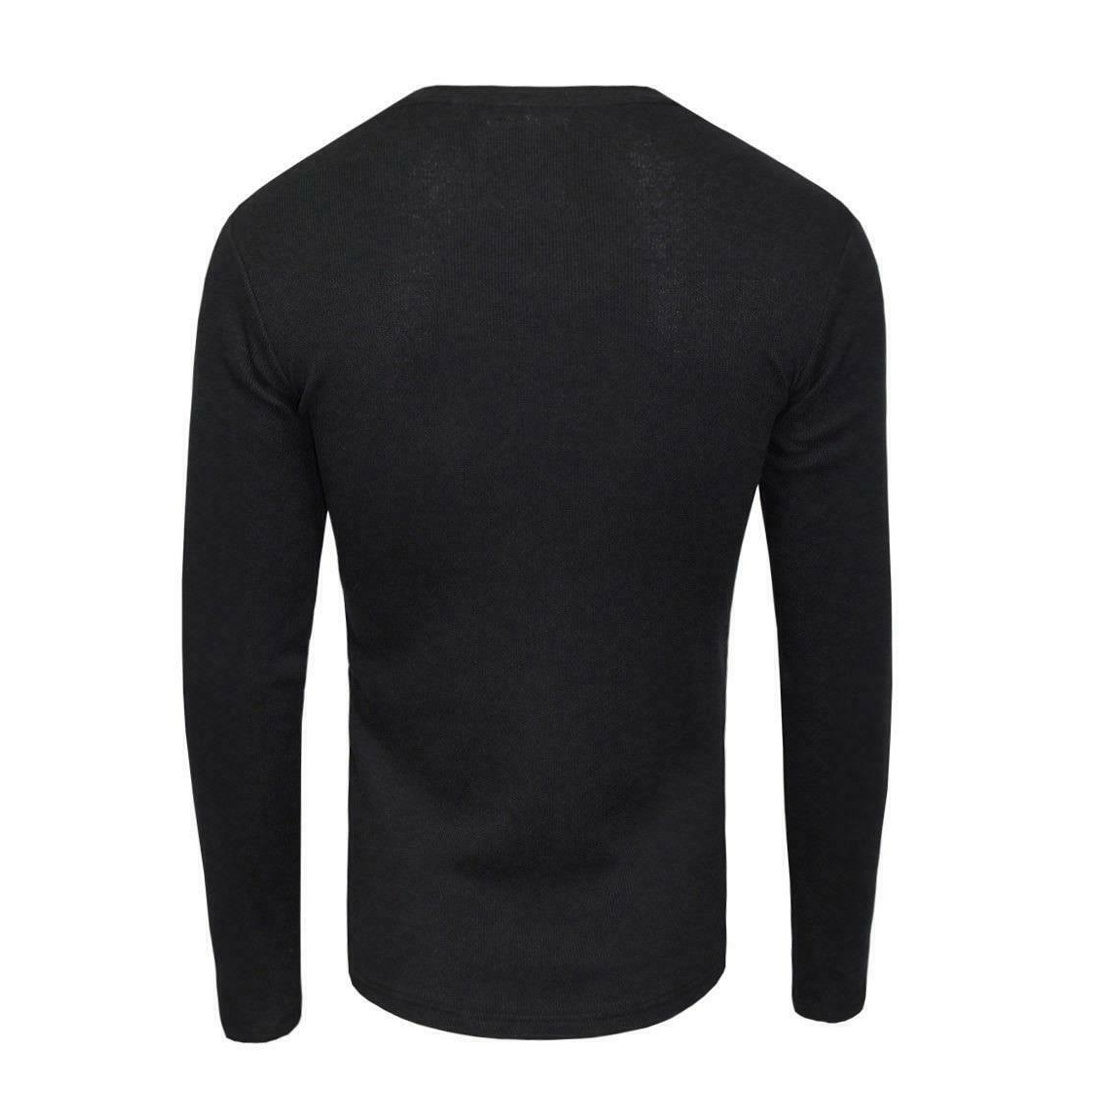 Brave-Soul-Casual-Grandad-Long-Sleeve-Top-Plain-T-Shirt thumbnail 6